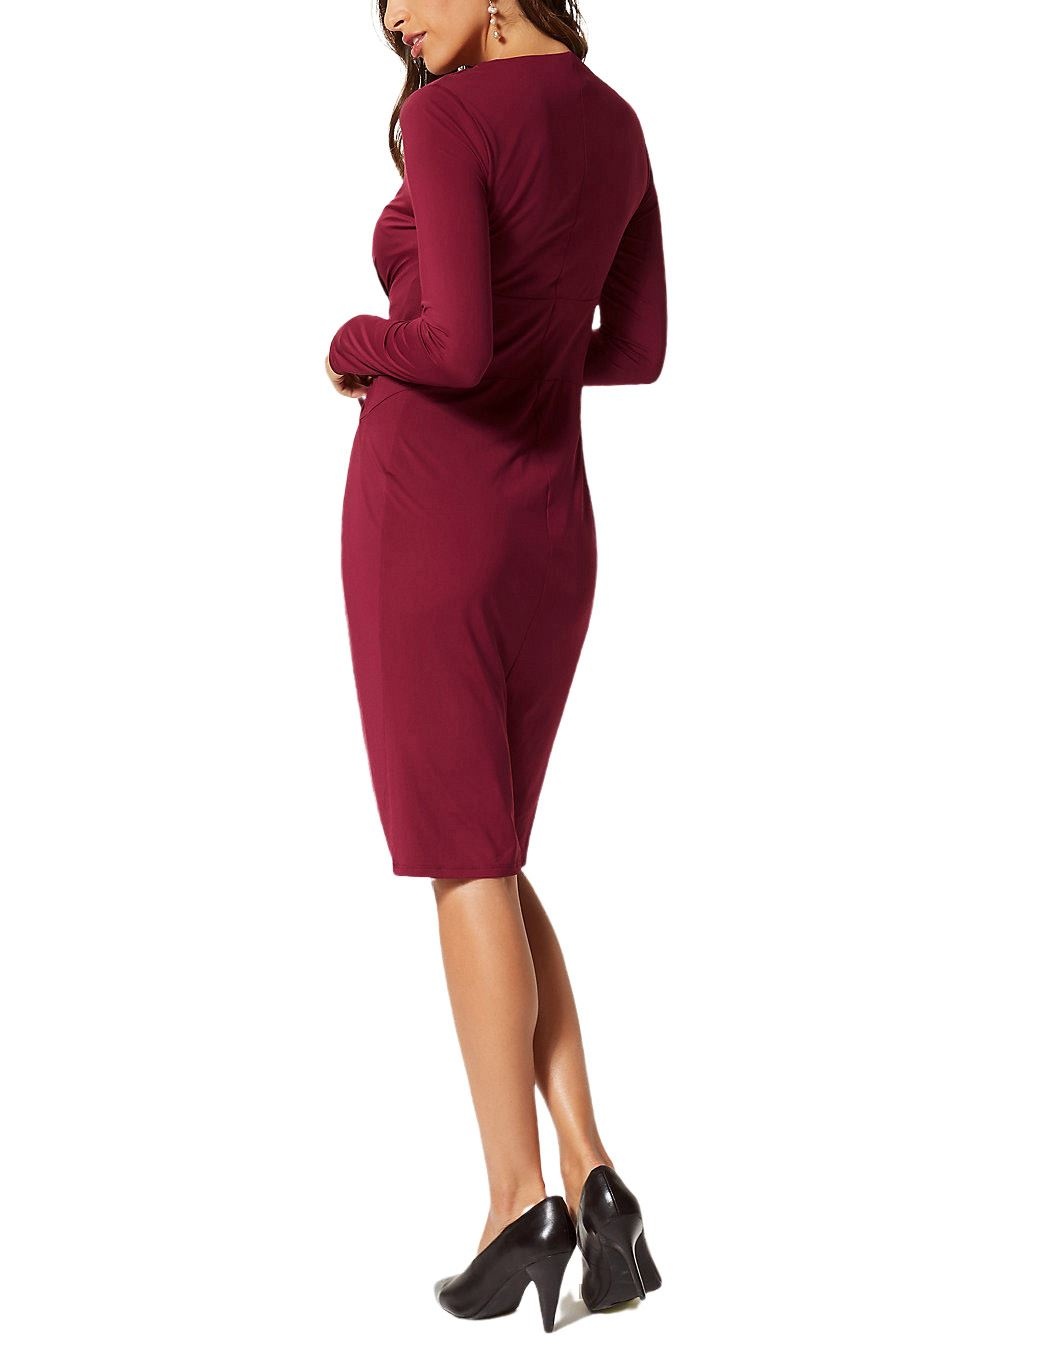 Ex-M-amp-S-Marks-Spencer-Tie-Front-Stretch-Midi-Dress-Burgundy-or-Black-Size-6-22 thumbnail 7